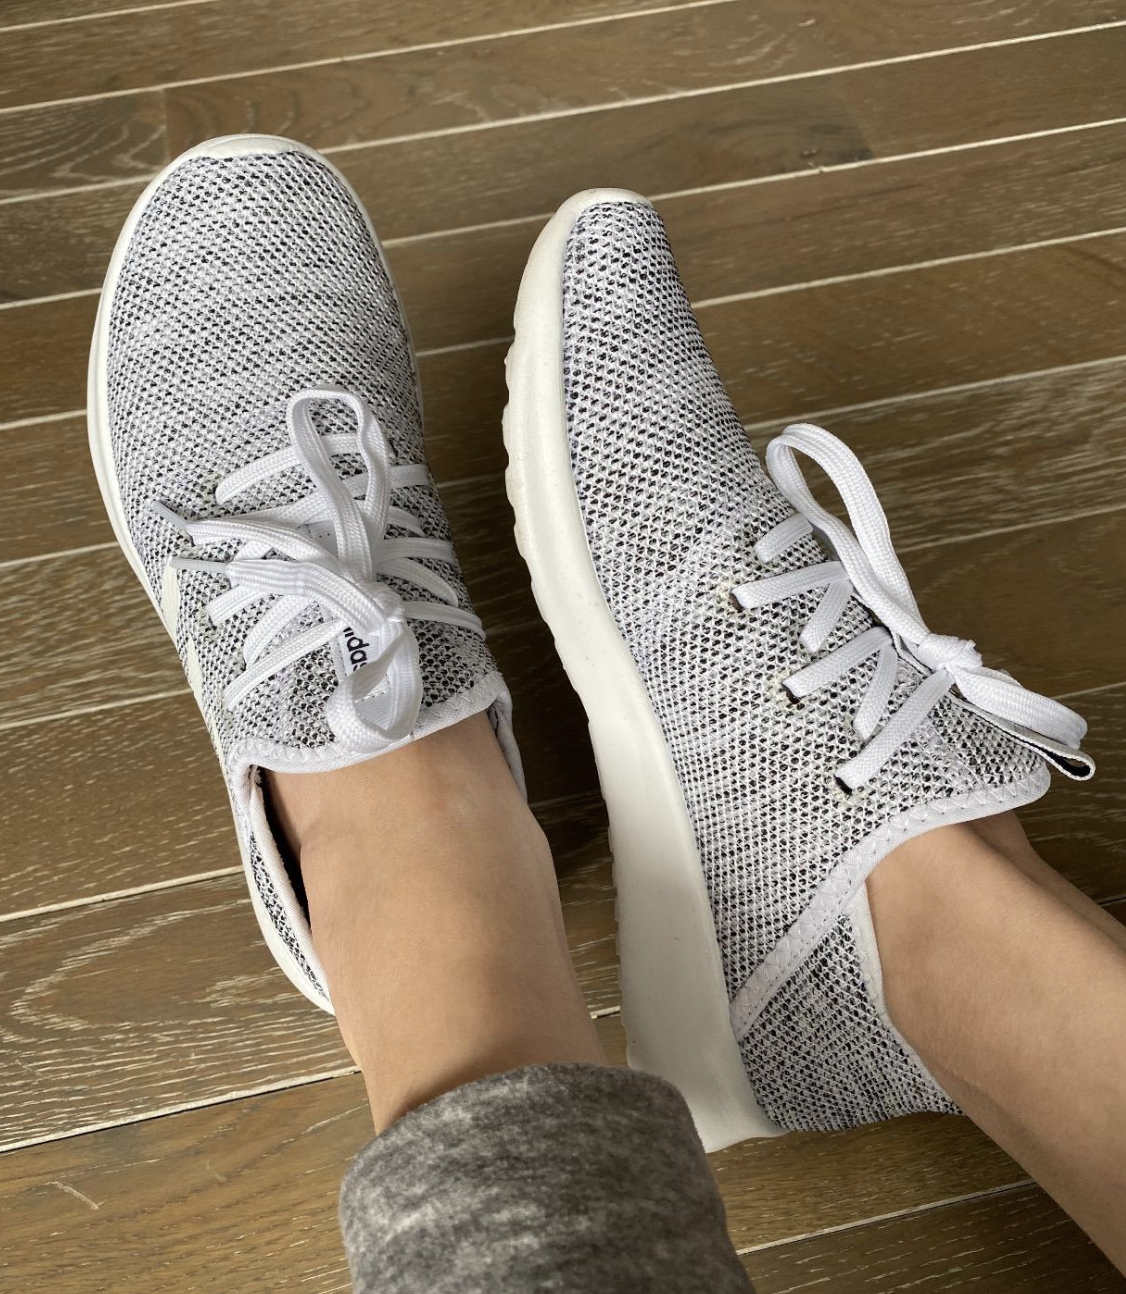 reviewer wearing grey and white sneakers with white laces